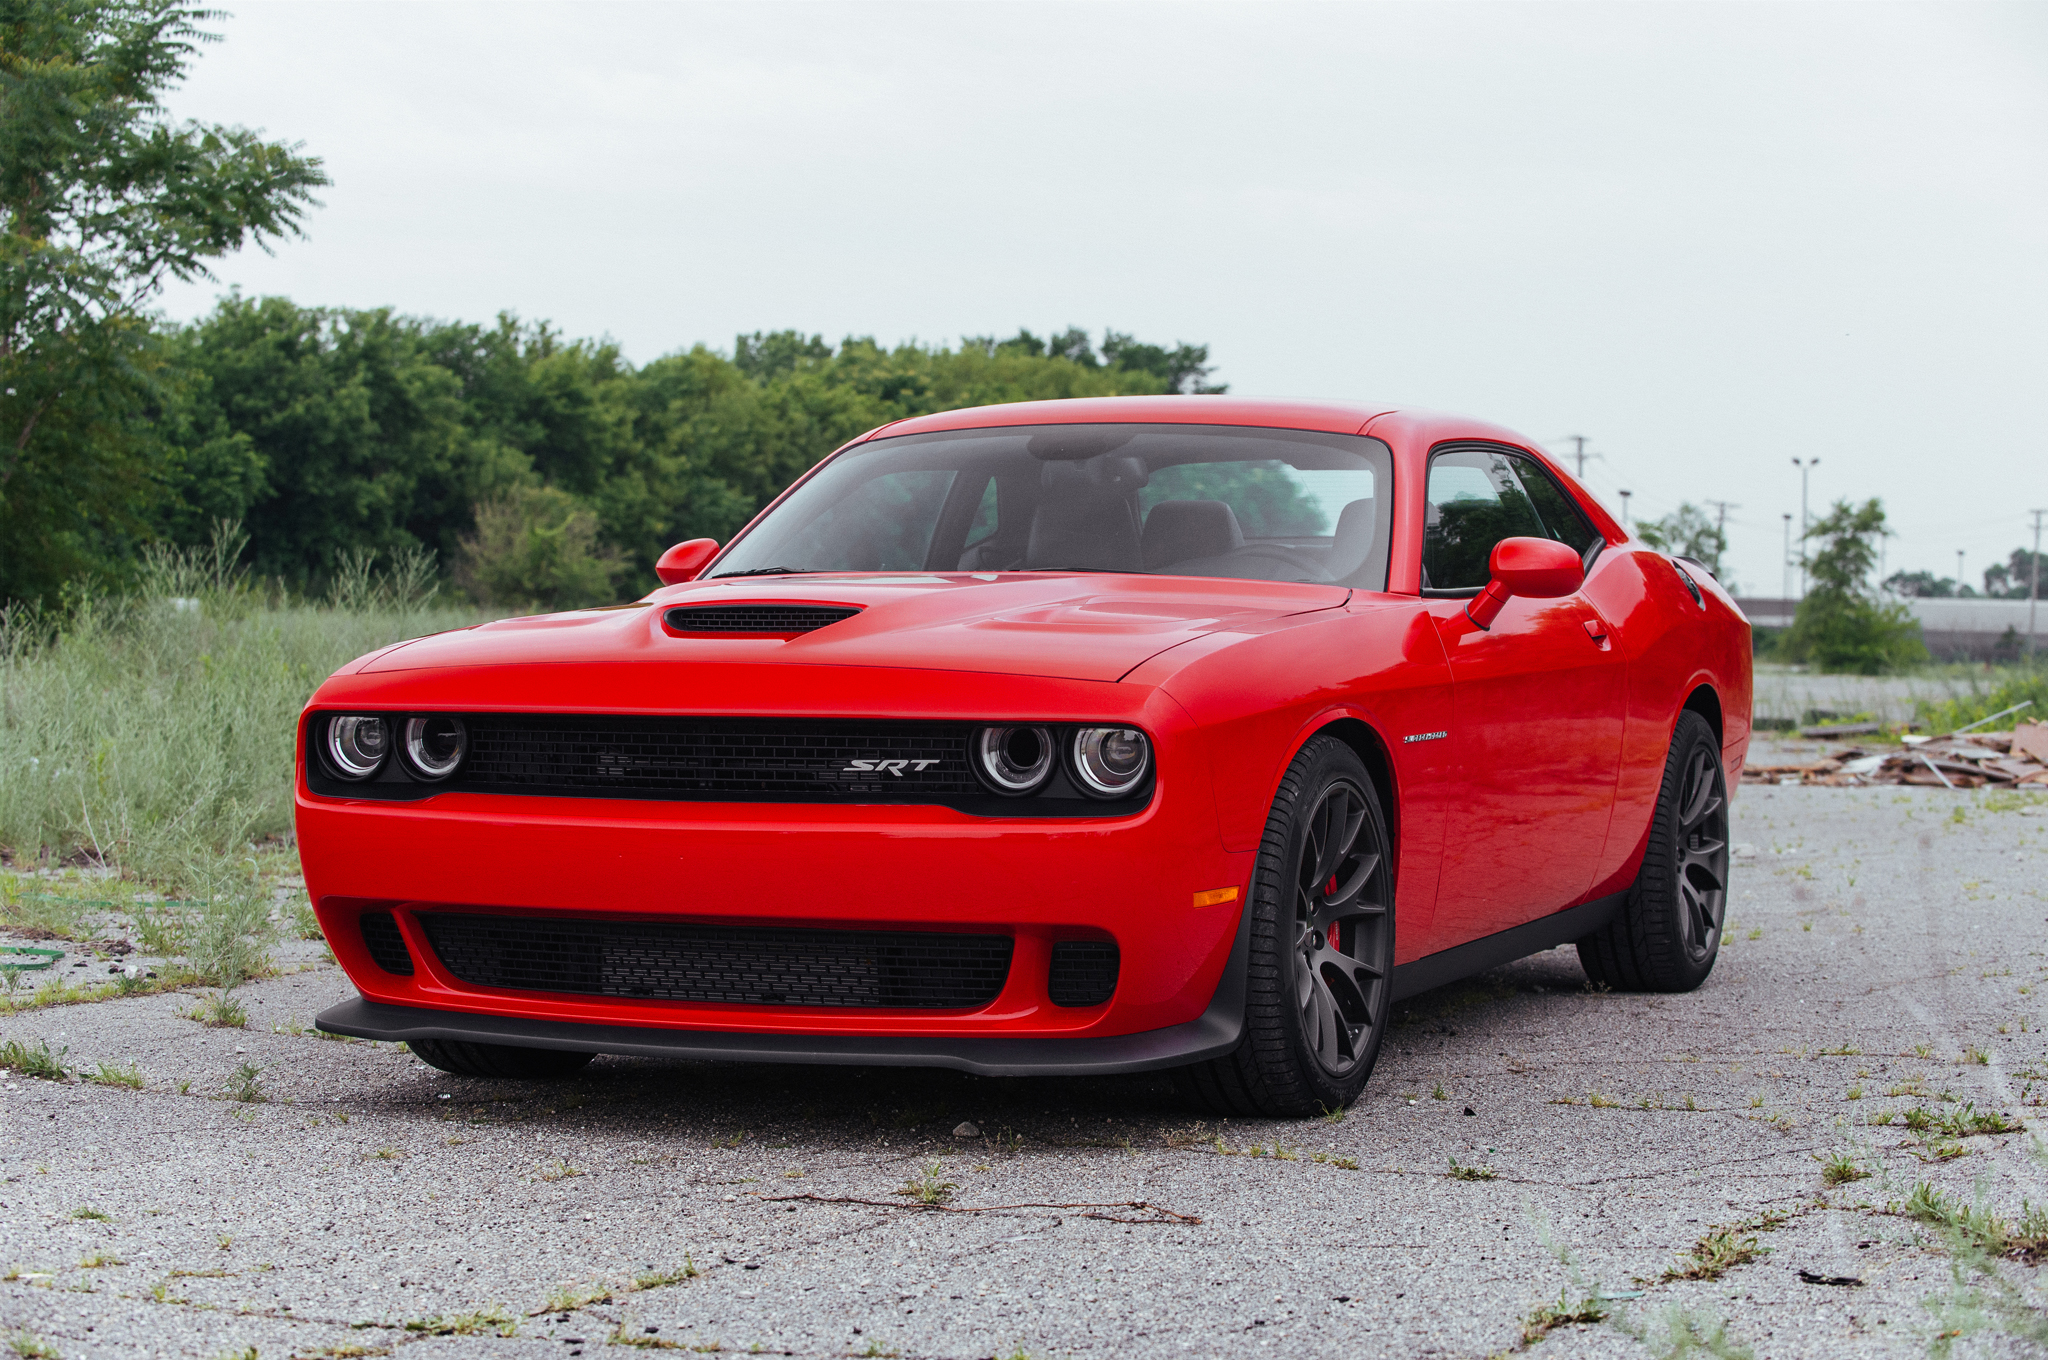 2019 Dodge Challenger SRT Hellcat photo - 6